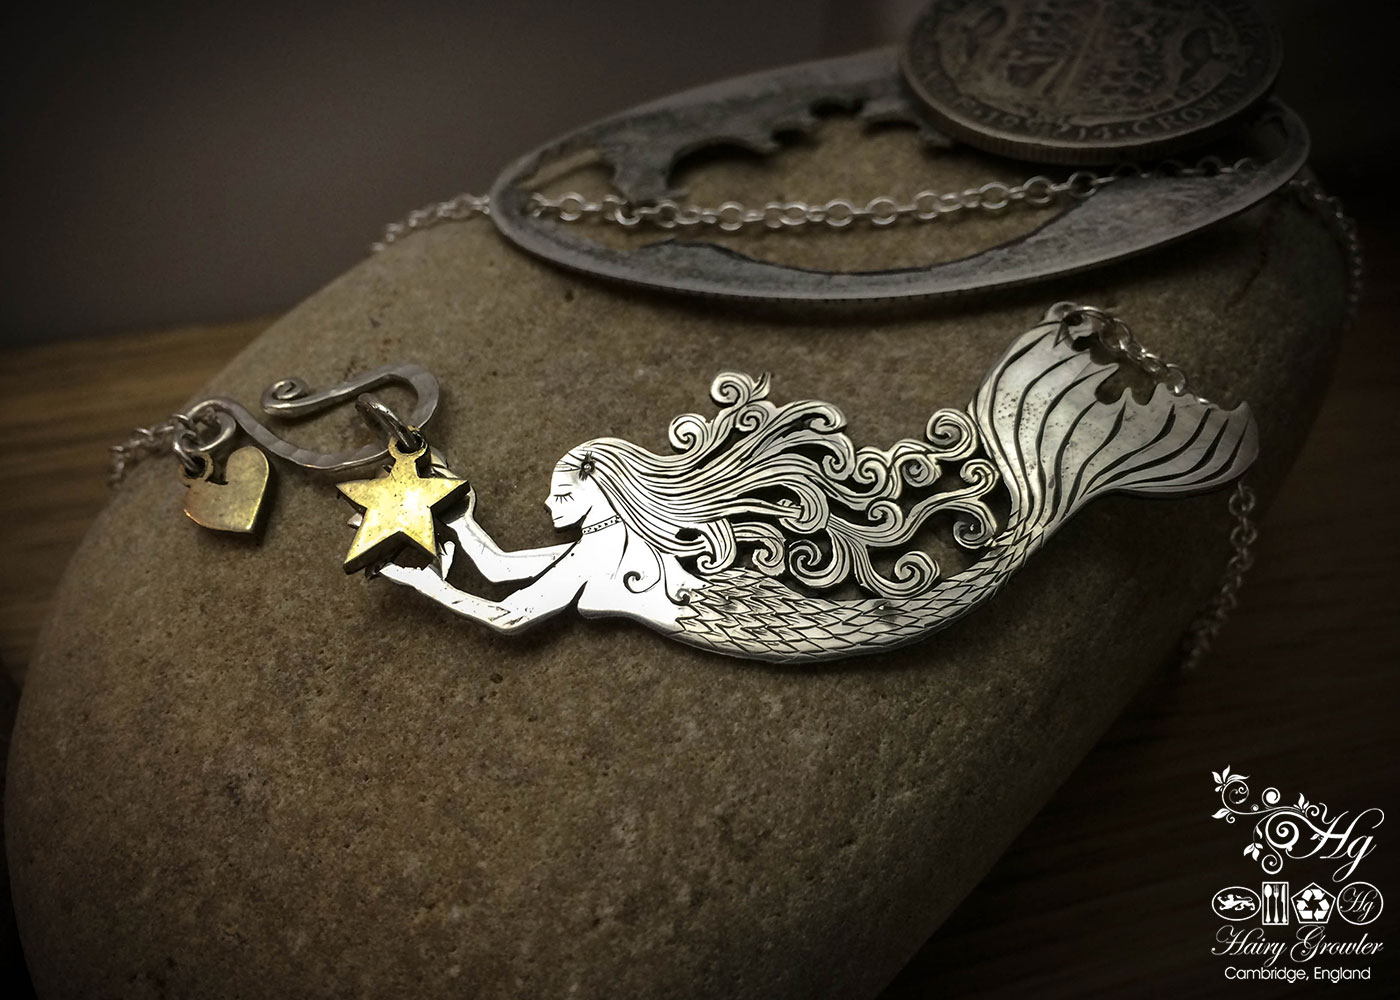 Handcrafted silver coin mermaid necklace made in landlocked Cambridge, UK